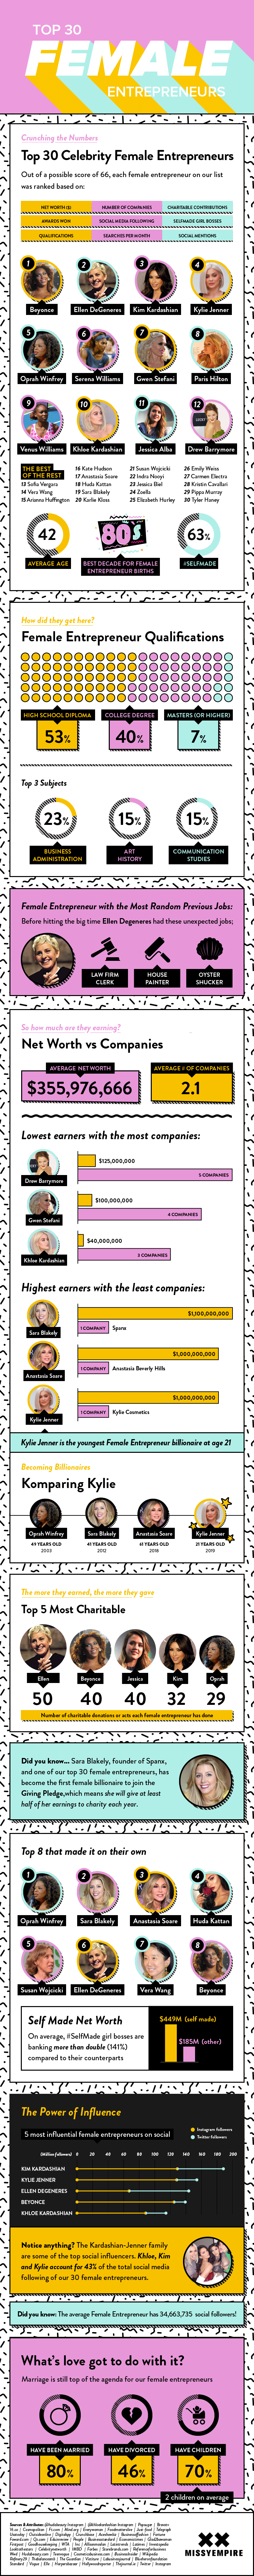 Top Female Entrepreneurs Statistics